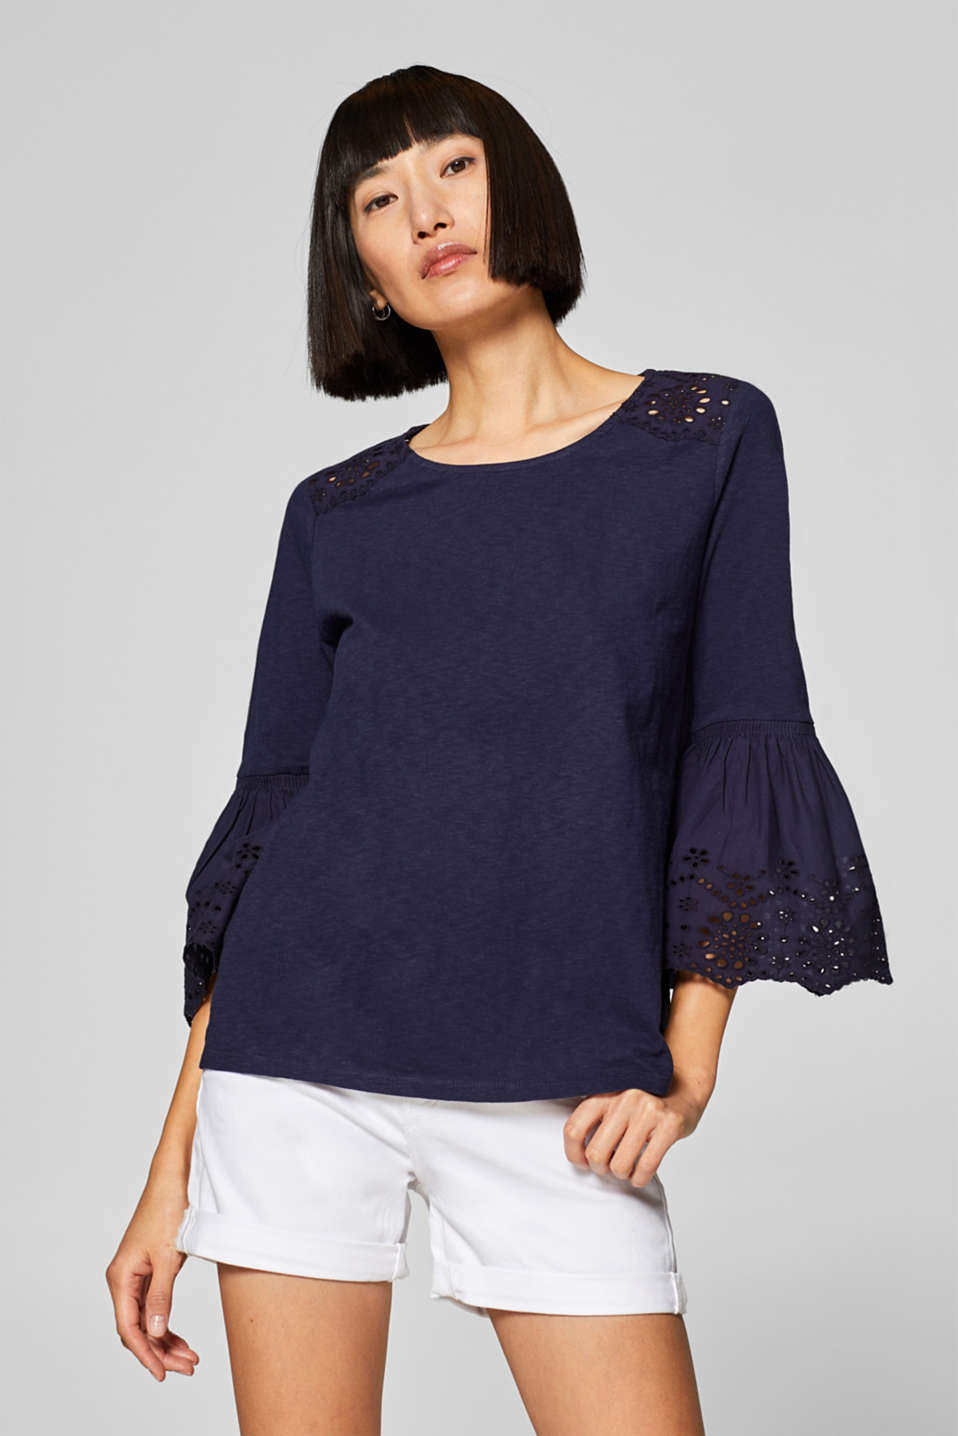 edc - Slub top with broderie anglaise, 100% cotton